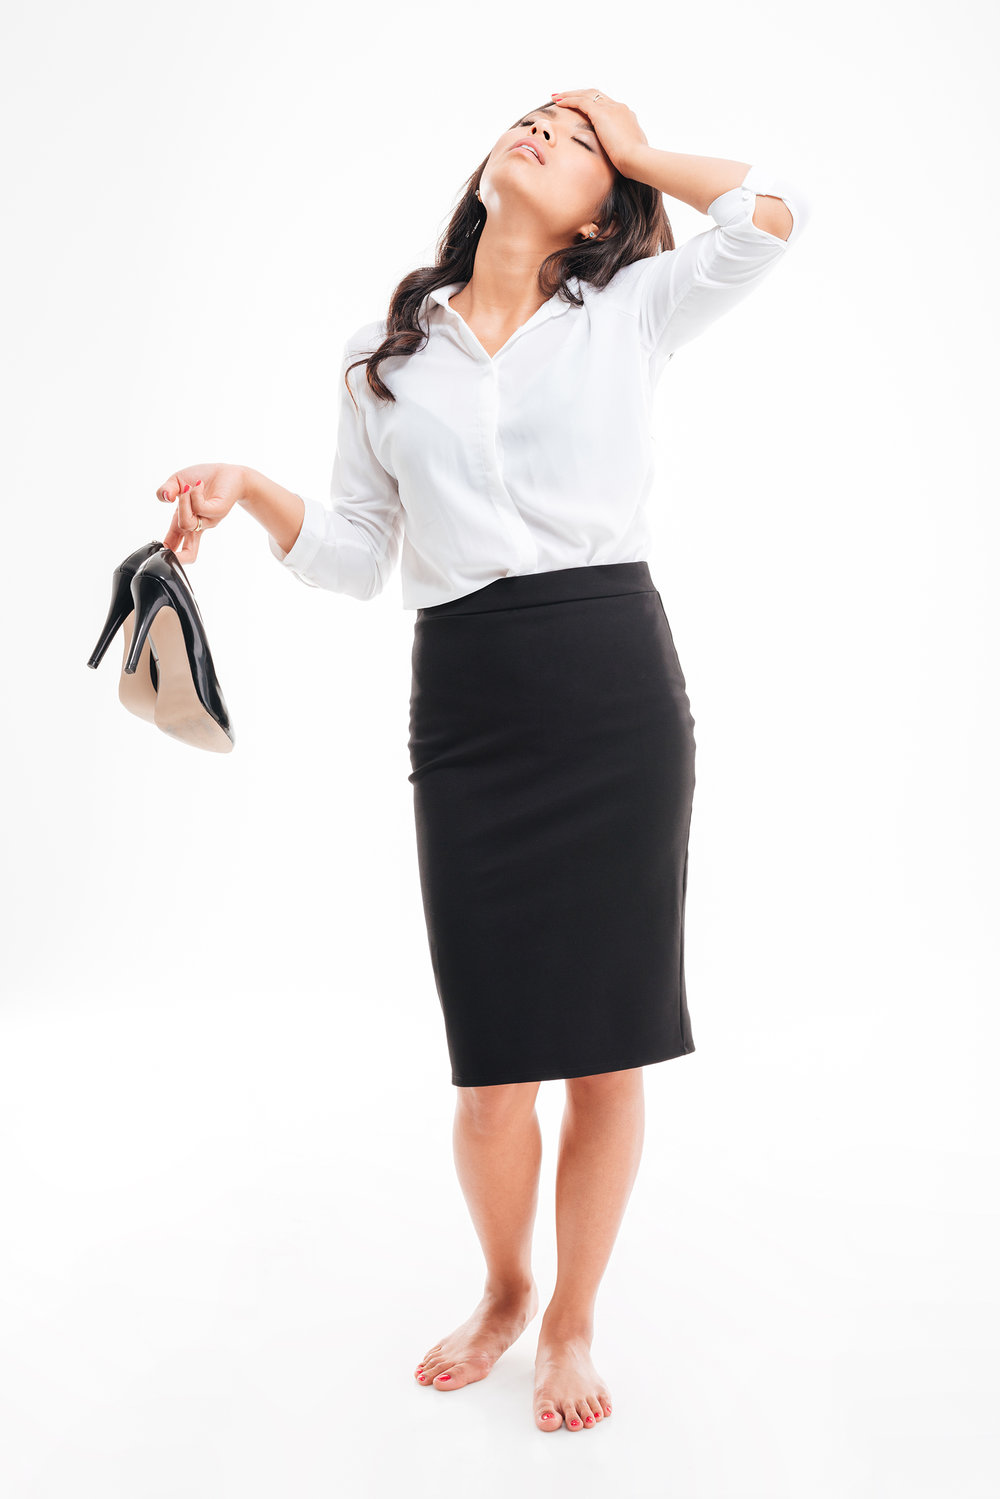 graphicstock-tired-exhausted-young-asian-businesswoman-standing-barefoot-and-holding-high-heels-shoes-over-white-background_Bdb08lEr3l.jpg